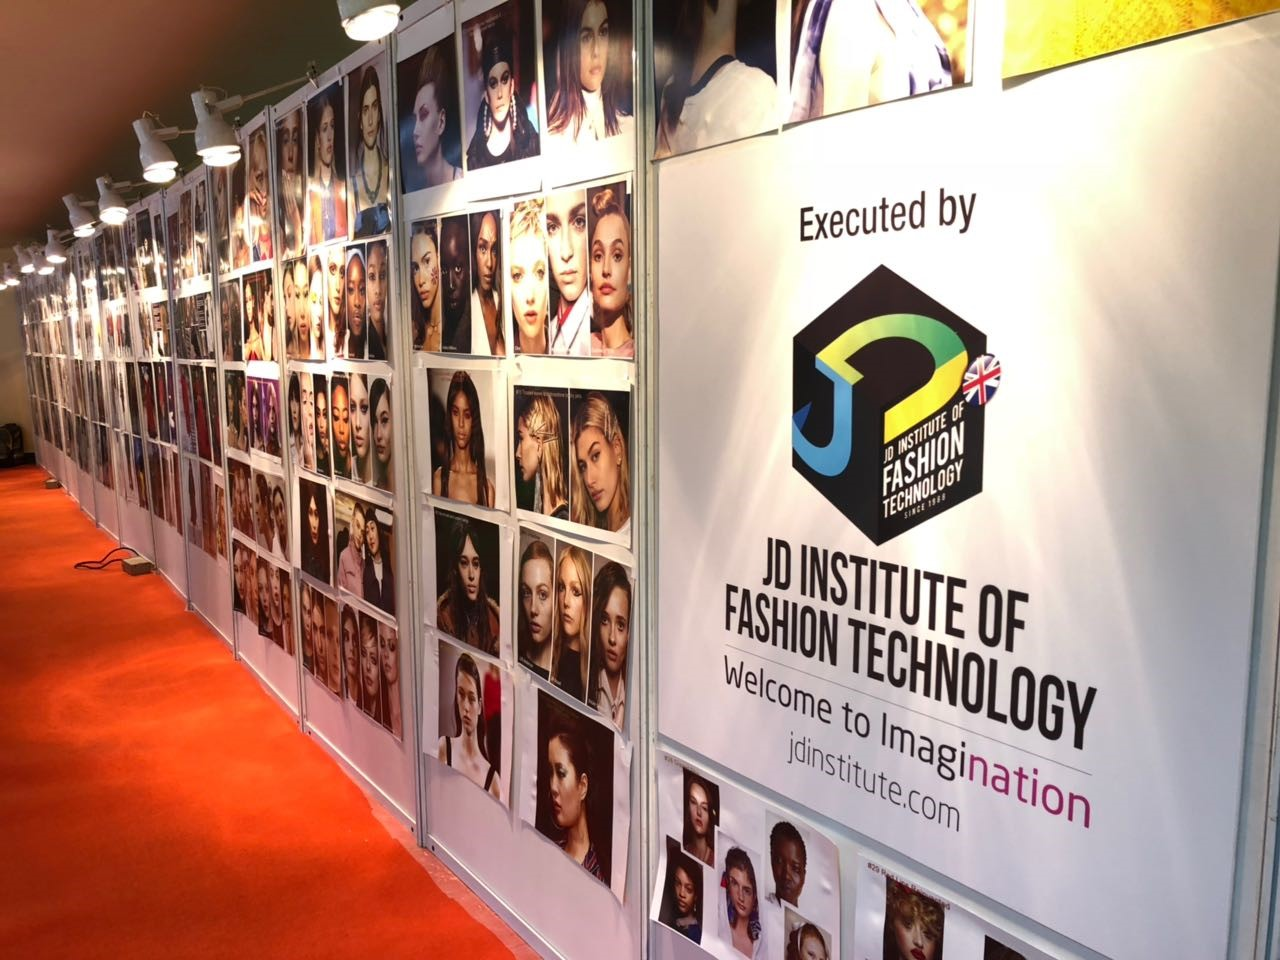 trade show 2018 trade show 2018 - TREND PAVILION1 - JD Institute at the Fabrics & Accessories Trade Show 2018